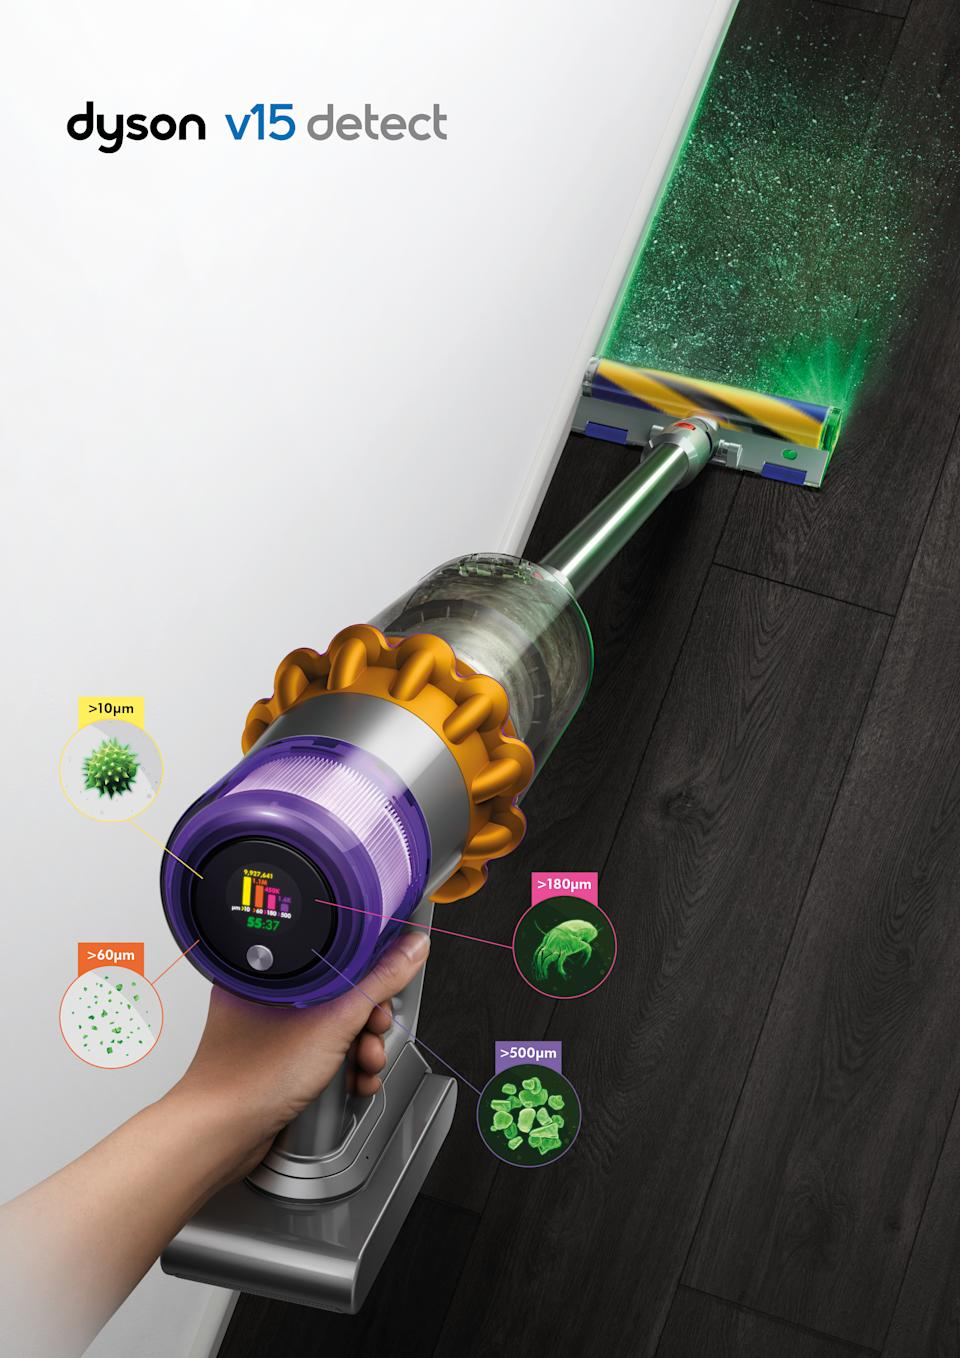 Dyson V15 Detect stick vacuum with laser